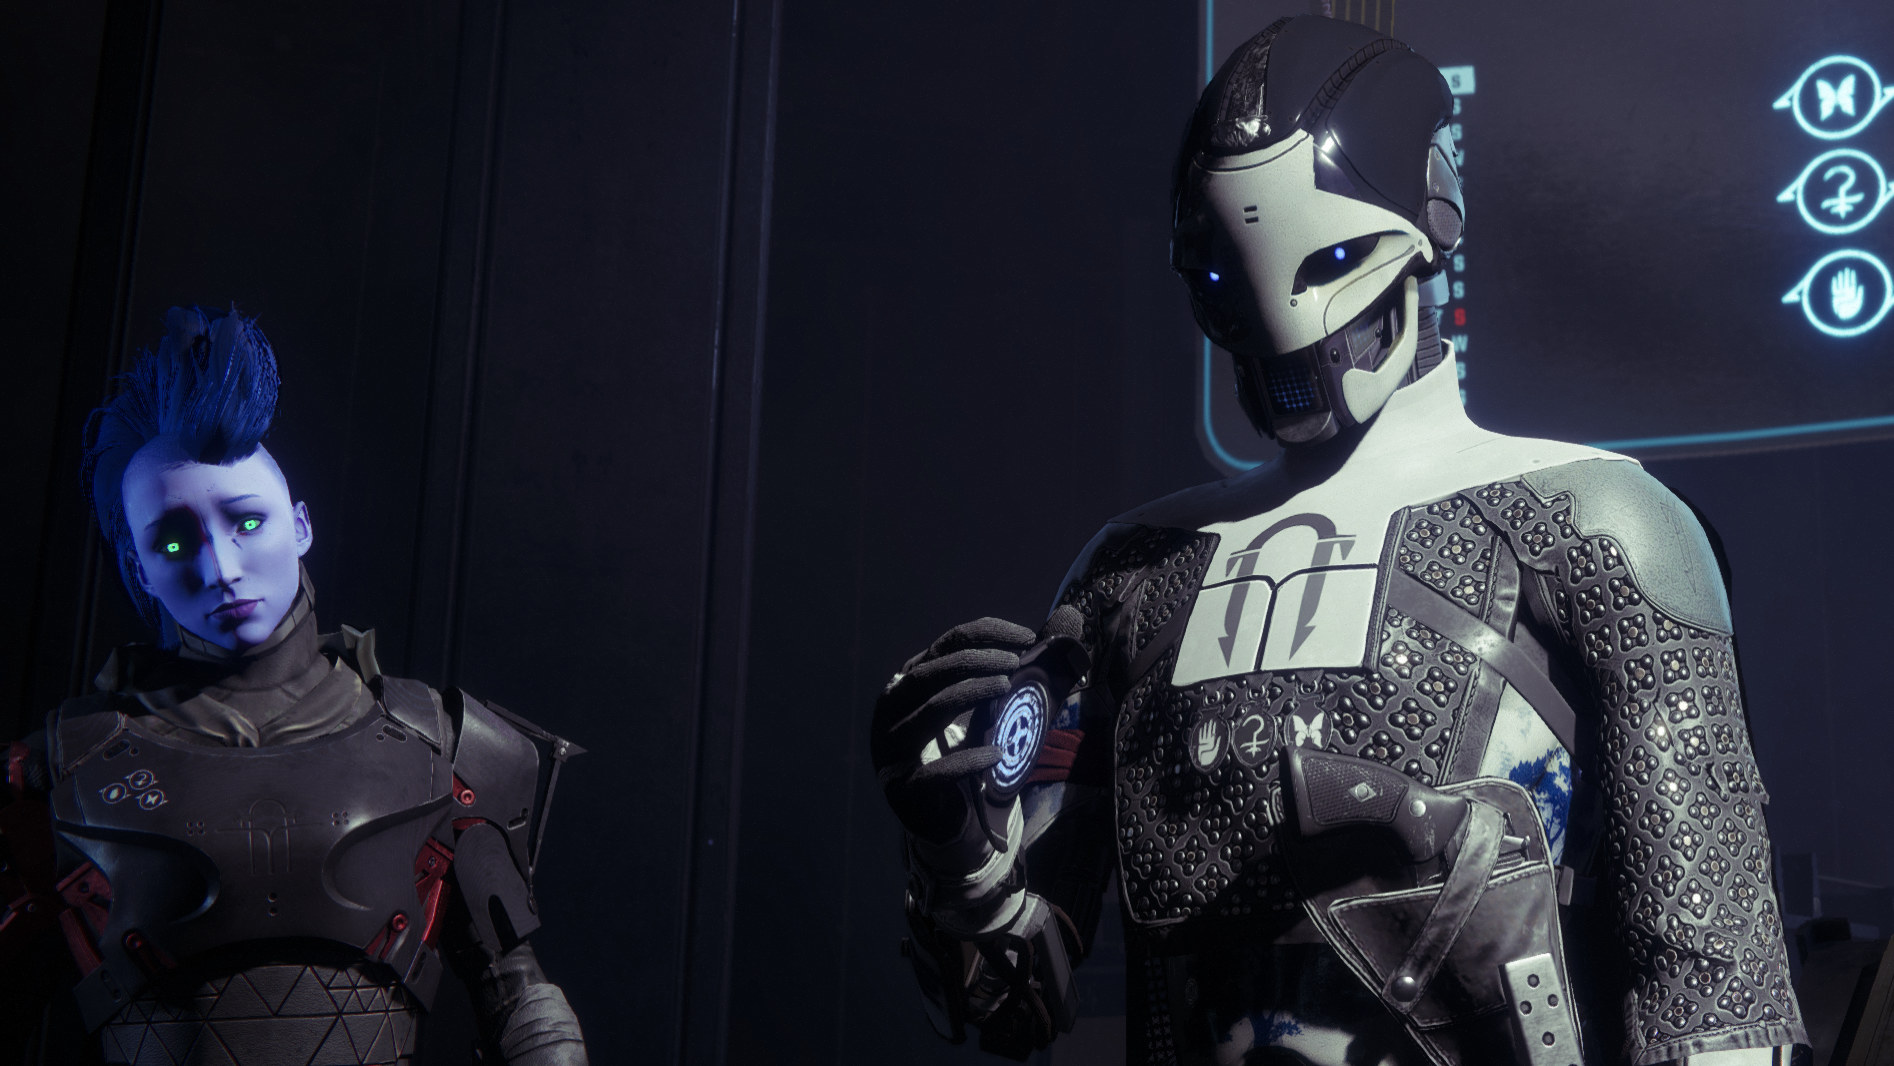 Destiny Will Remain the Focus for Bungie Following Their Split from Activision